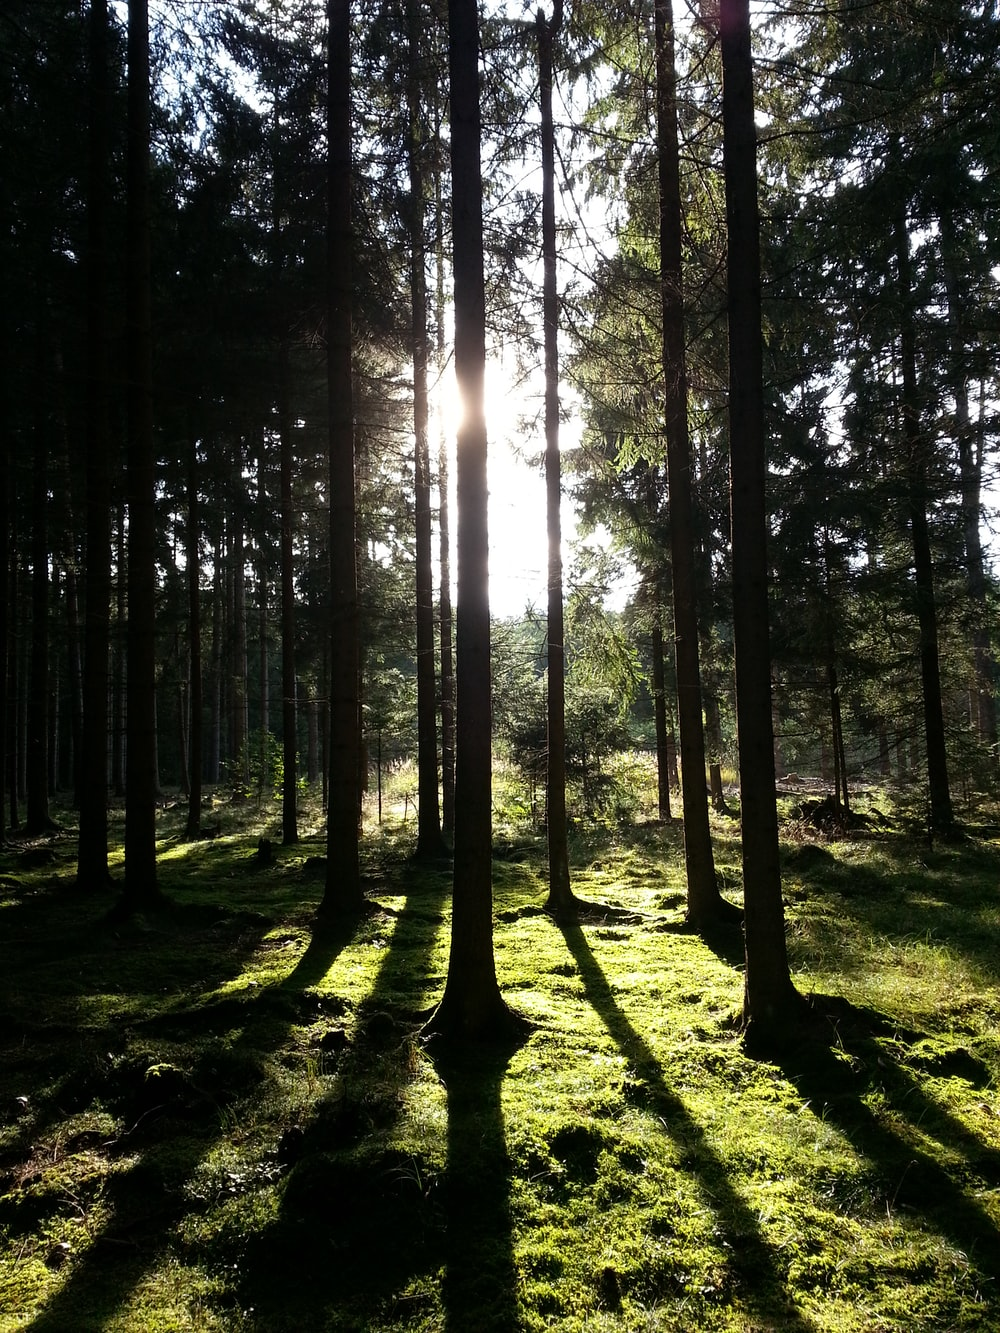 silhouette of trees in forest with sunlight